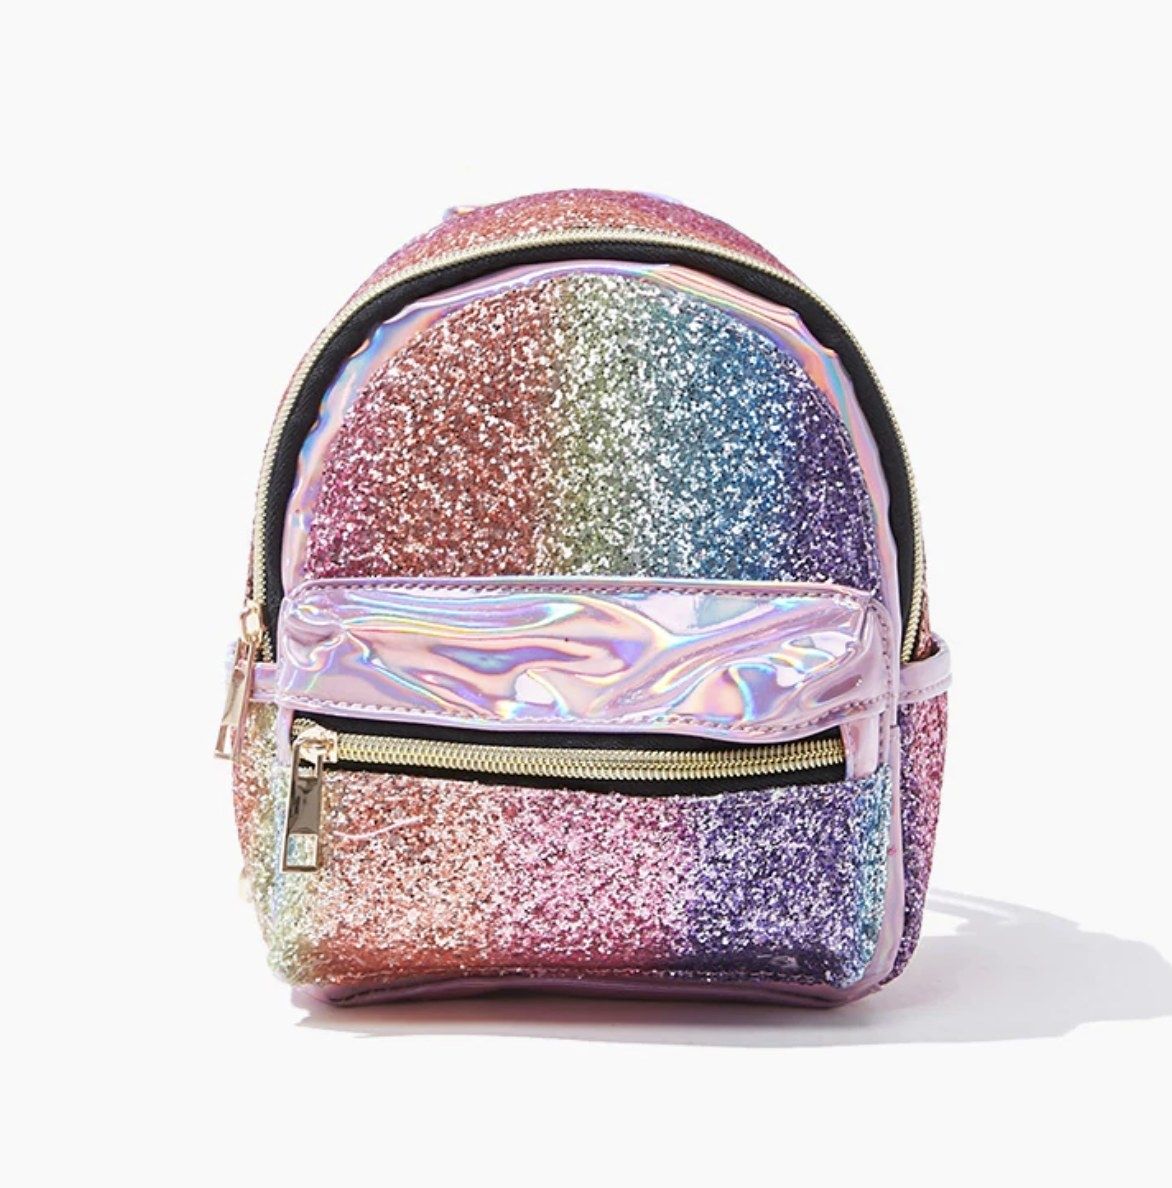 A metallic glitter bag